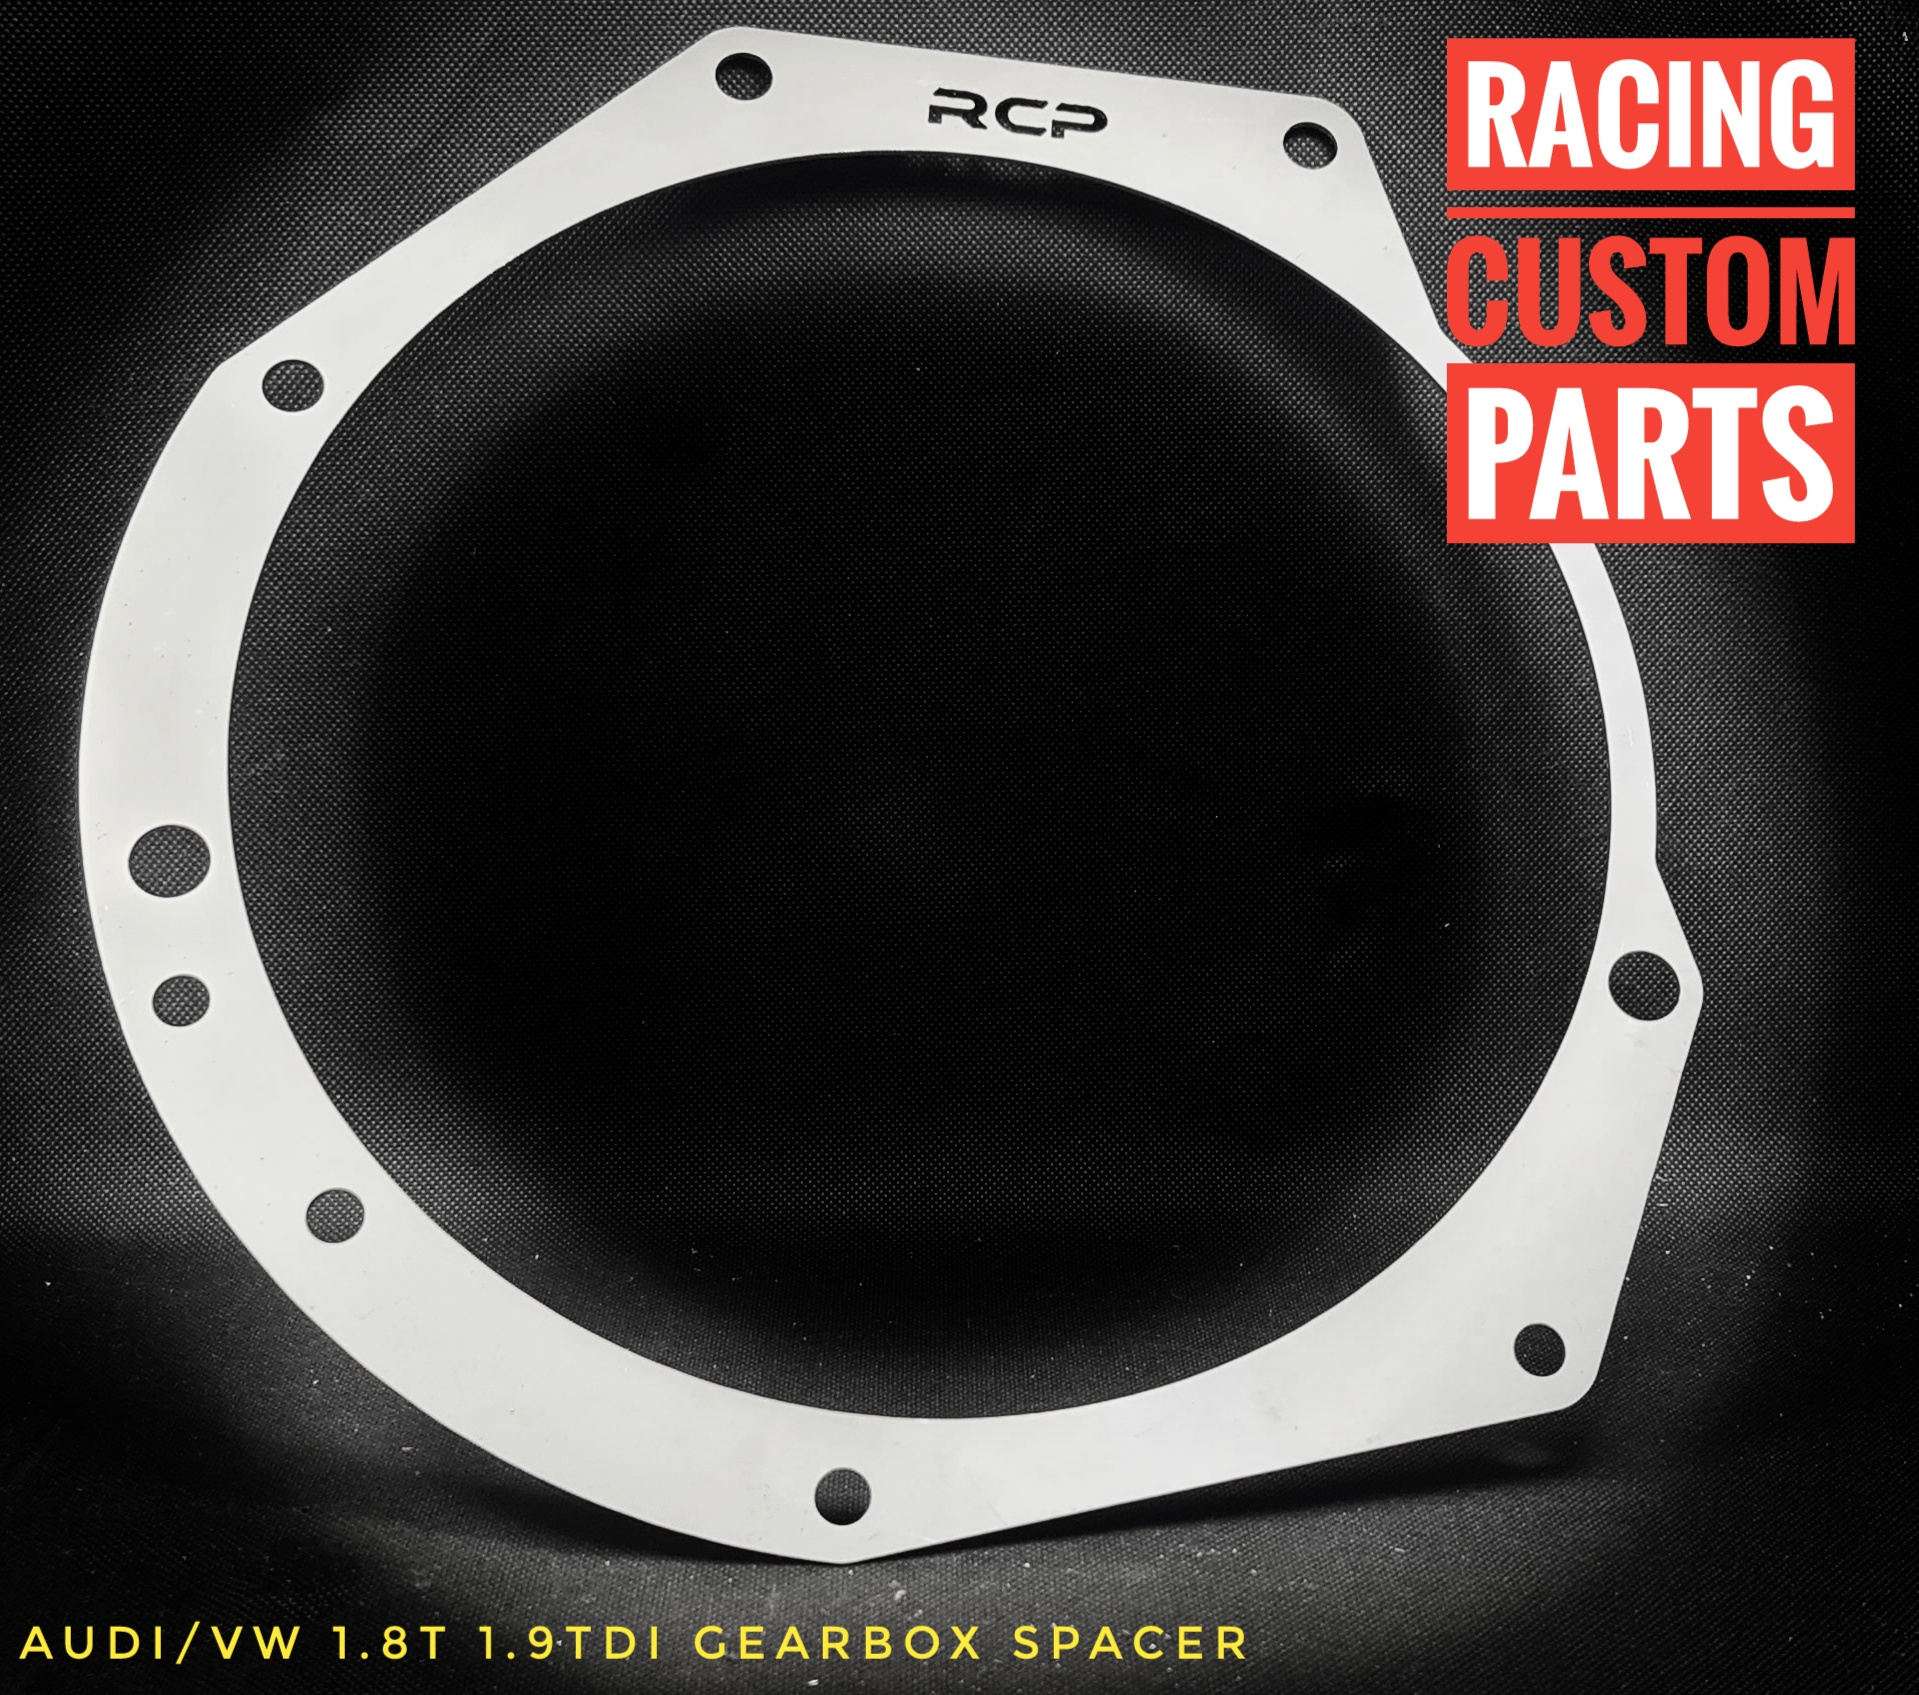 audi vw 1,8 turbo 1,9tdi gearbox spacer clutch racing custom parts billet cnc